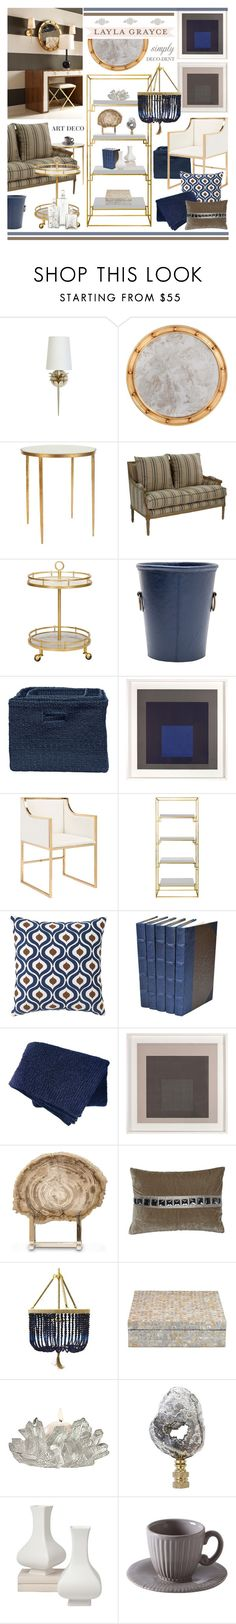 """""""#SimplyDecoDent With @LaylaGrayce & @Polyvore"""" by designsbytraci ❤ liked on Polyvore featuring interior, interiors, interior design, home, home decor, interior decorating, Worlds Away, Zentique, Pigeon & Poodle and Natural Curiosities"""